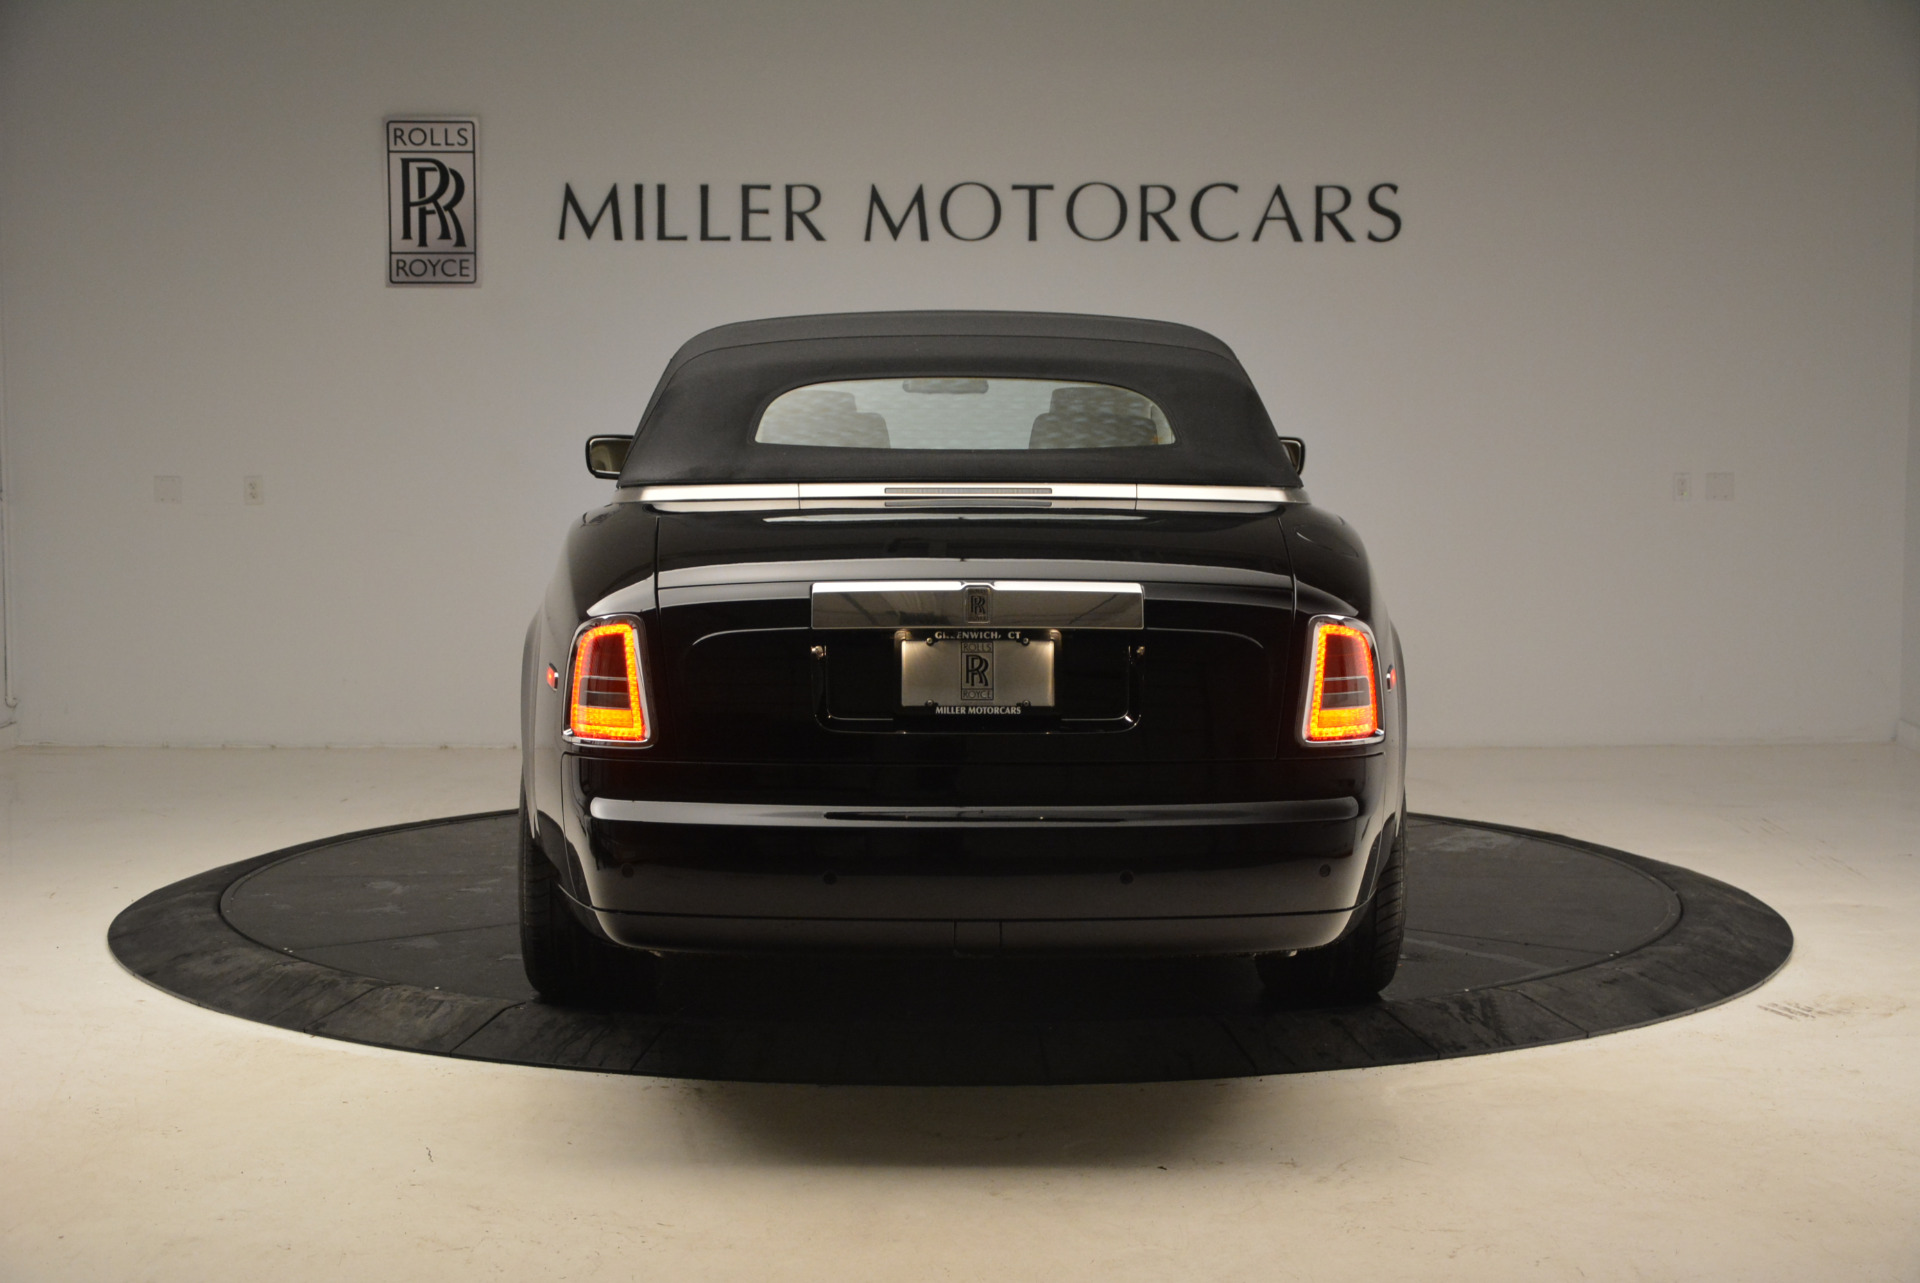 Used 2009 Rolls-Royce Phantom Drophead Coupe  For Sale In Westport, CT 1792_p18